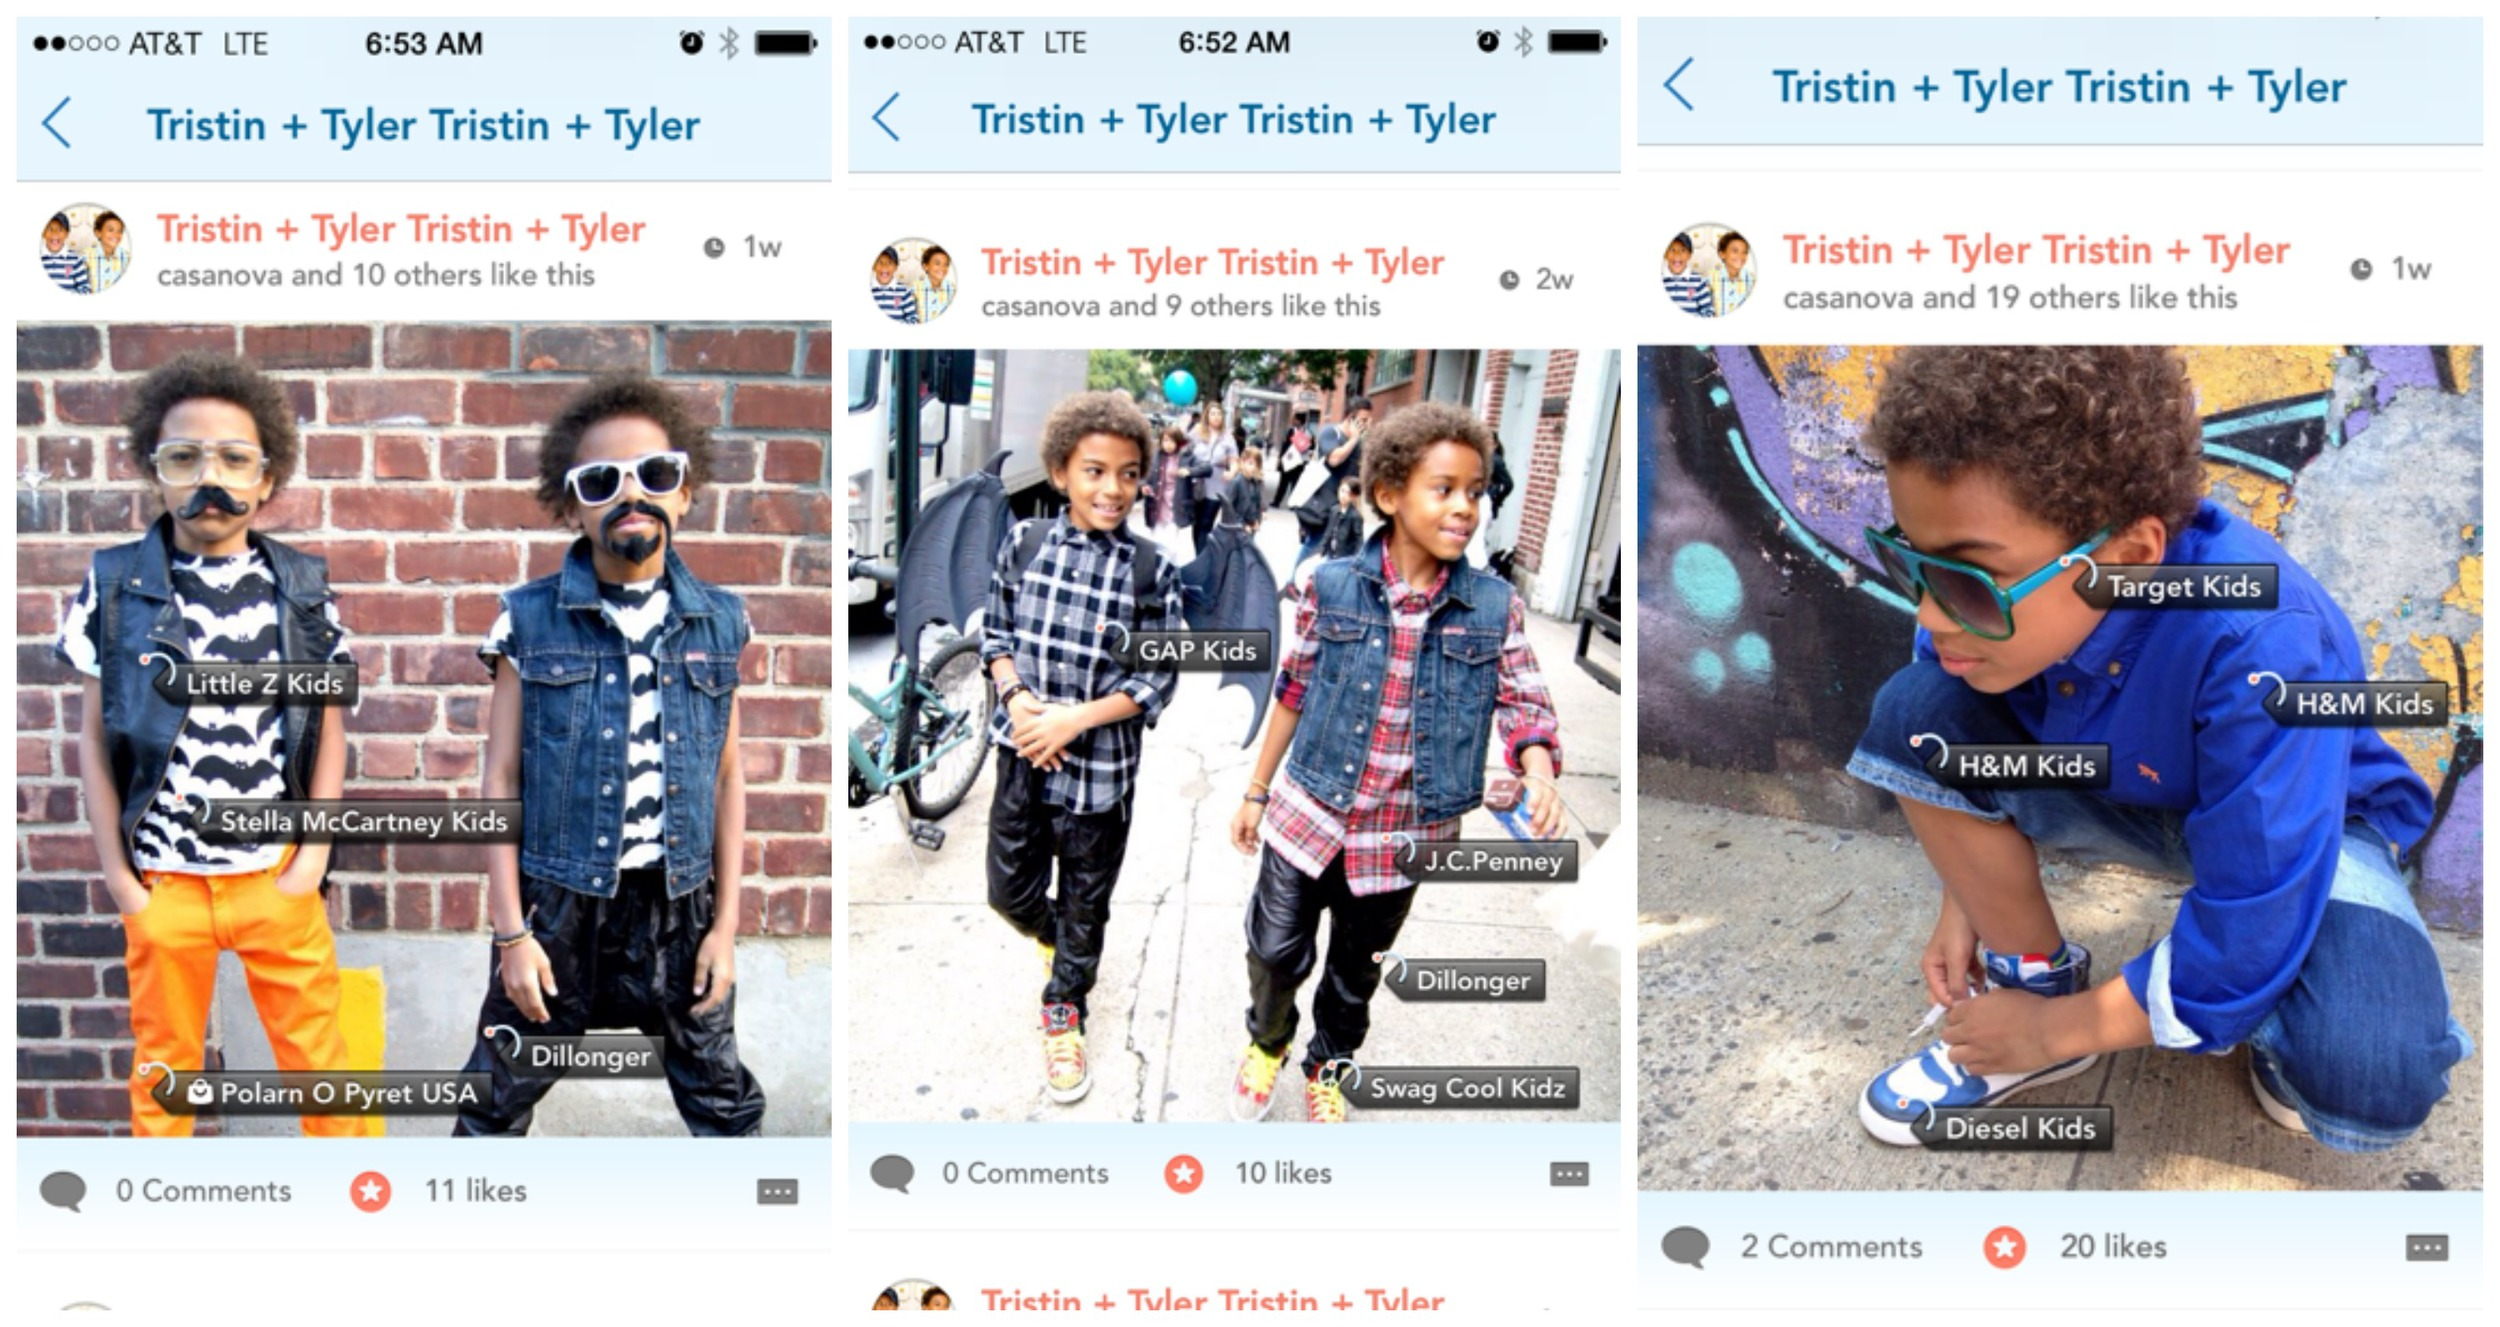 Lilstylers screen shot collage